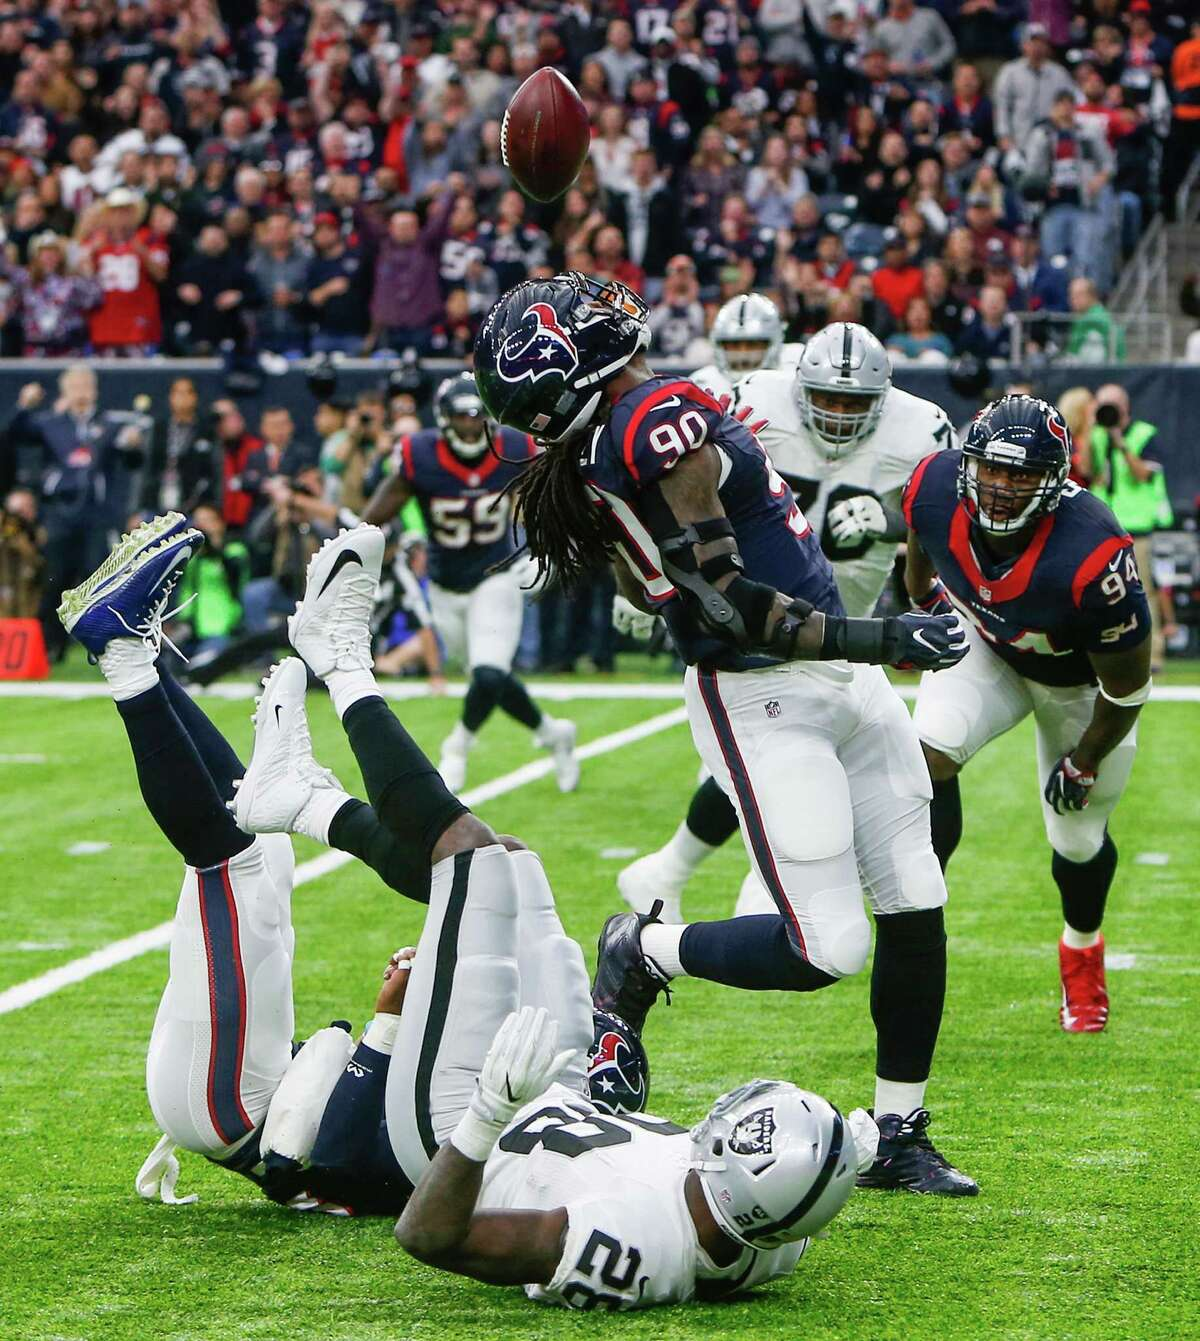 Houston Texans defensive end Jadeveon Clowney (90) intercepts a pass by Oakland Raiders quarterback Connor Cook during the first quarter of an AFC Wild Card Playoff game at NRG Stadium on Saturday, Jan. 7, 2017, in Houston. ( Brett Coomer / Houston Chronicle )